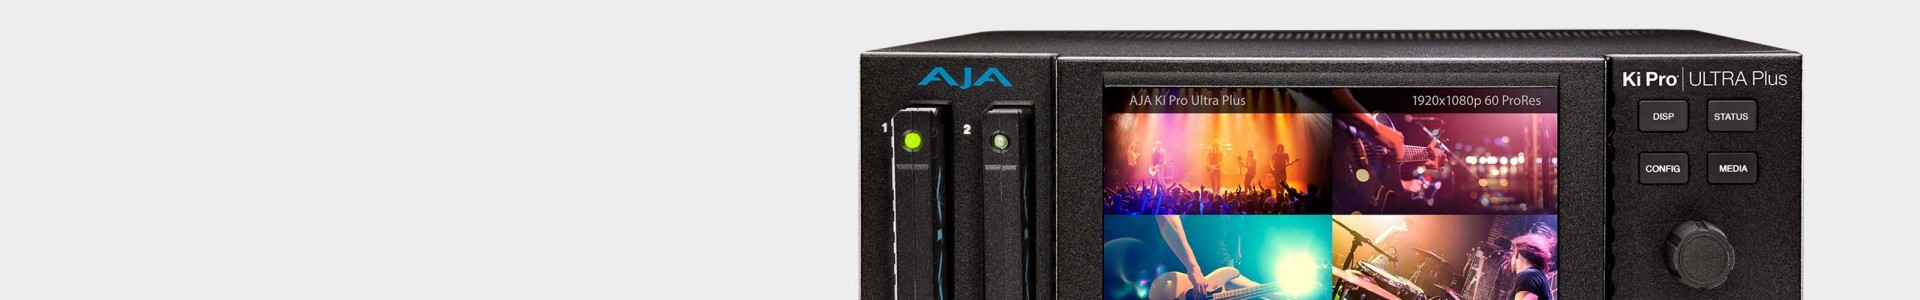 AJA - Avacab official dealer of all its products Contact us!